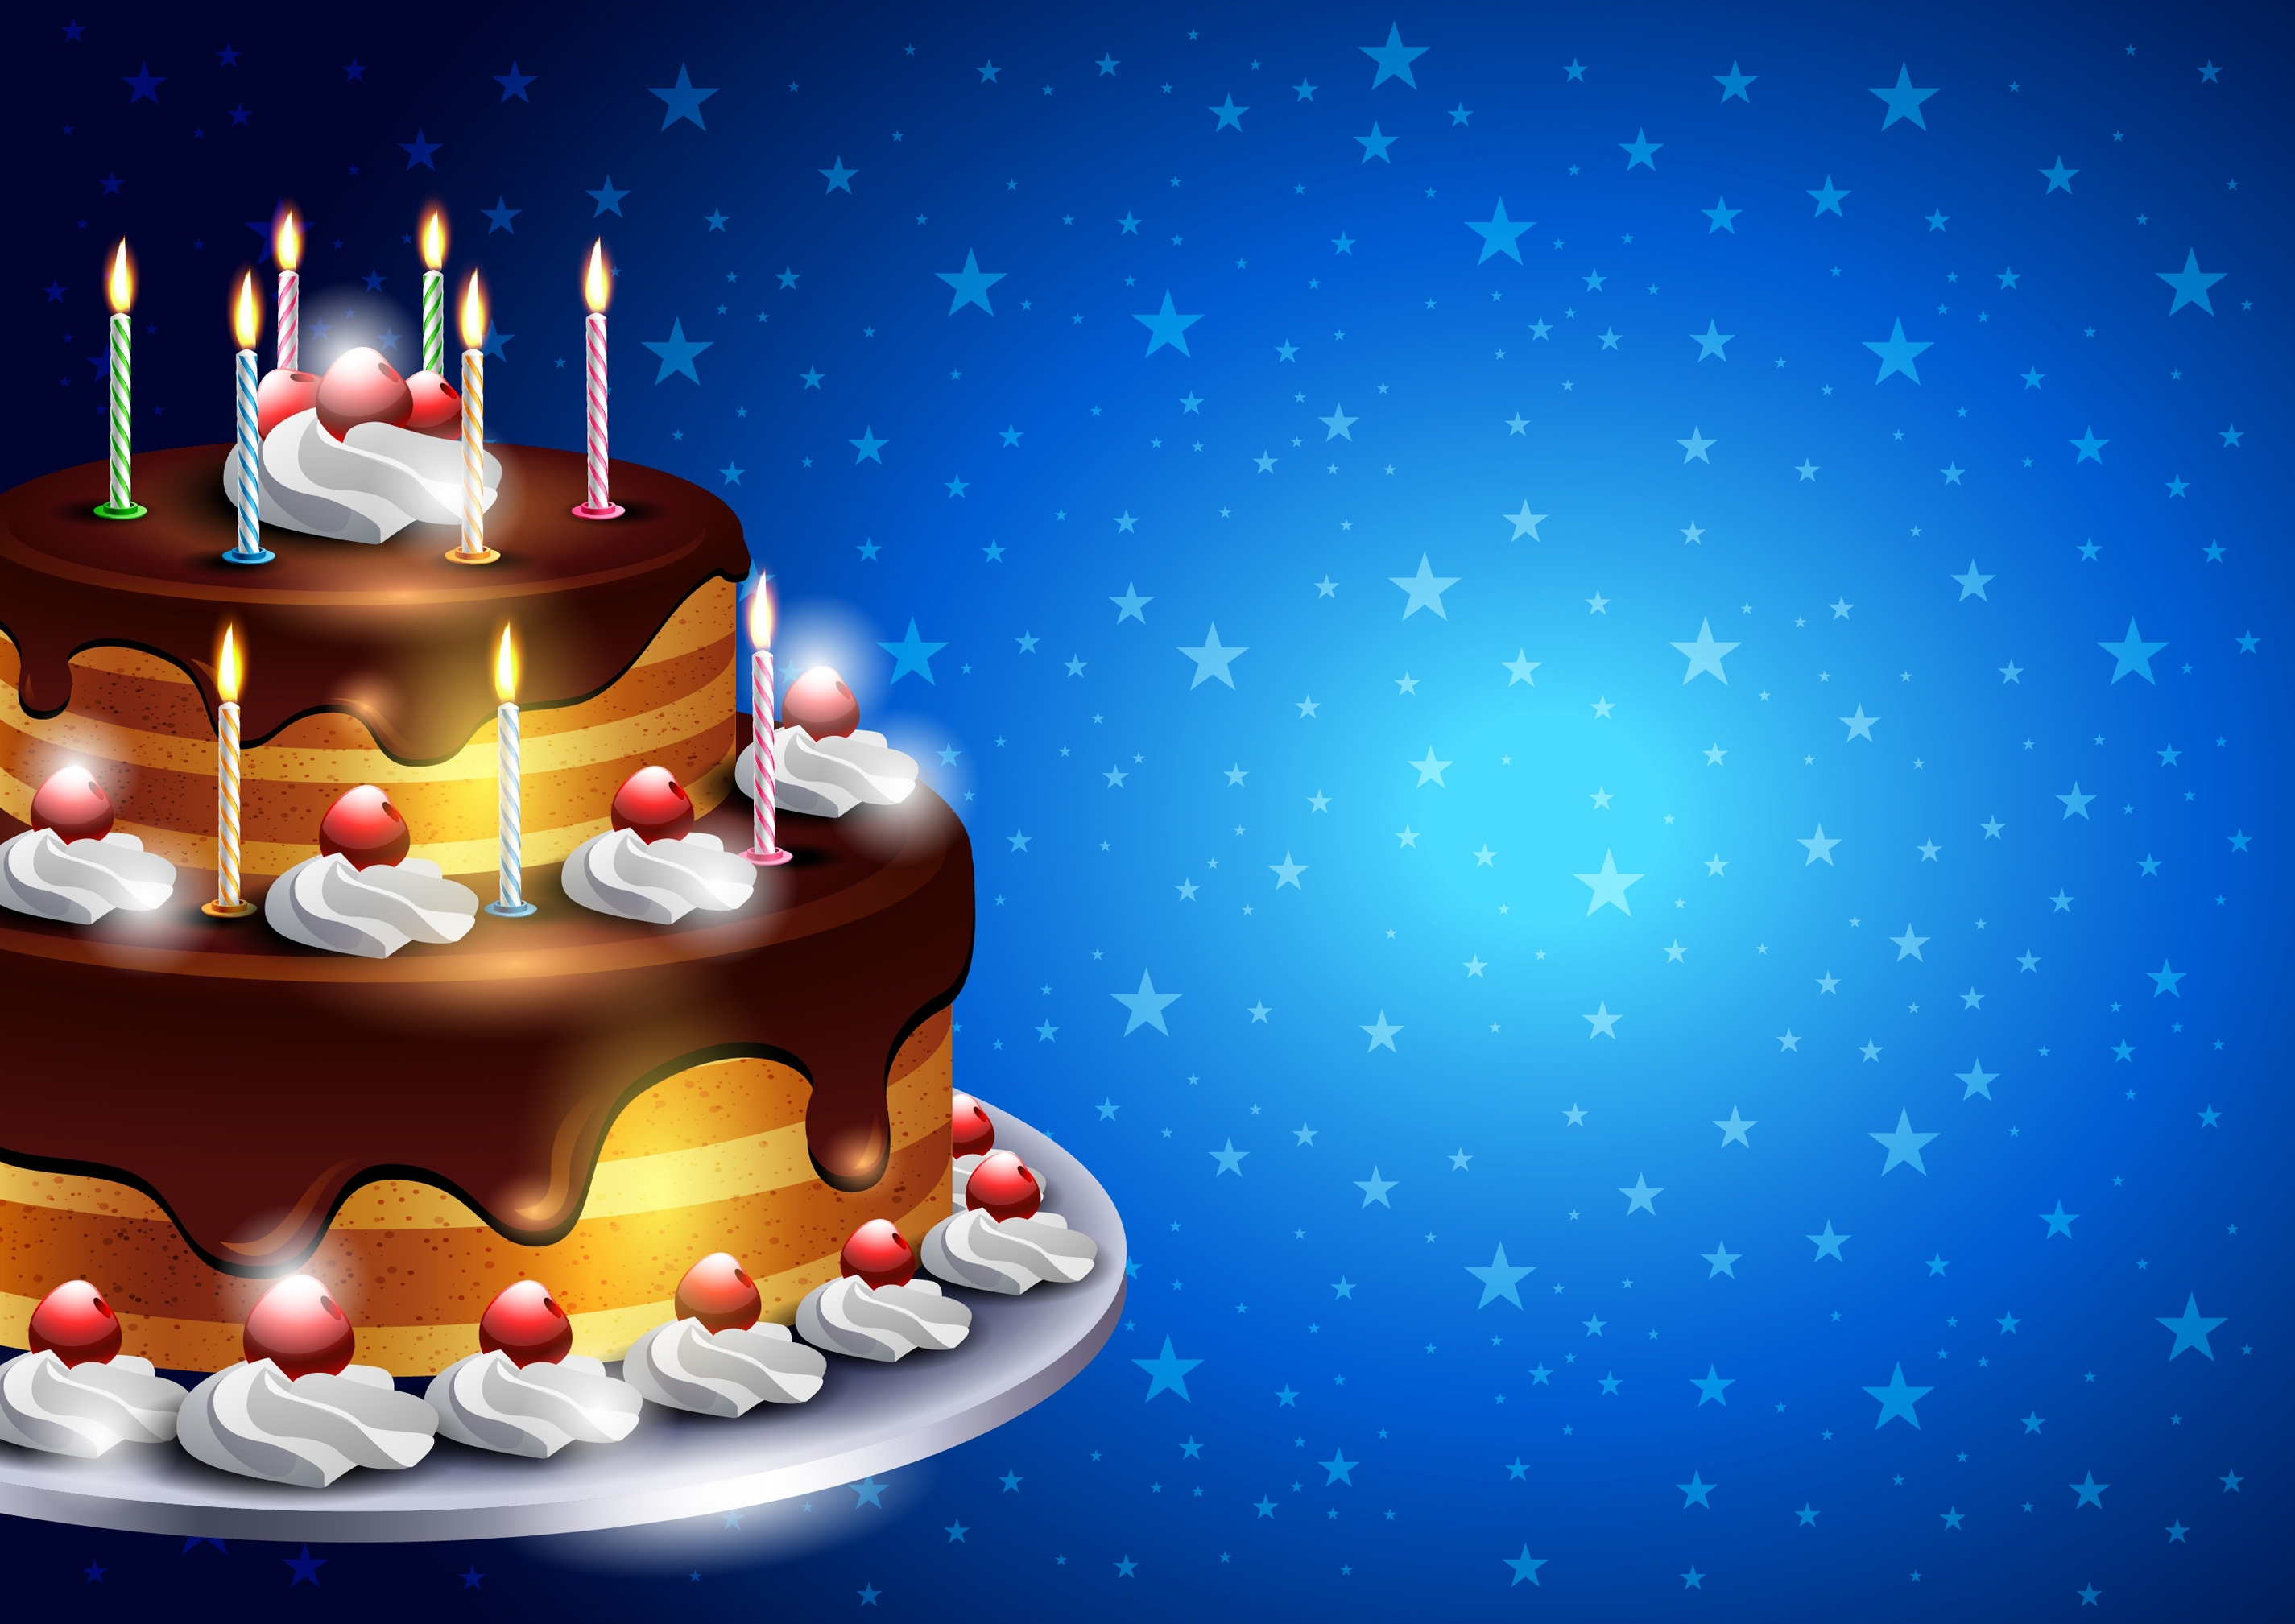 birthday background wallpaper hd ; birthday-background-images-view-full-size